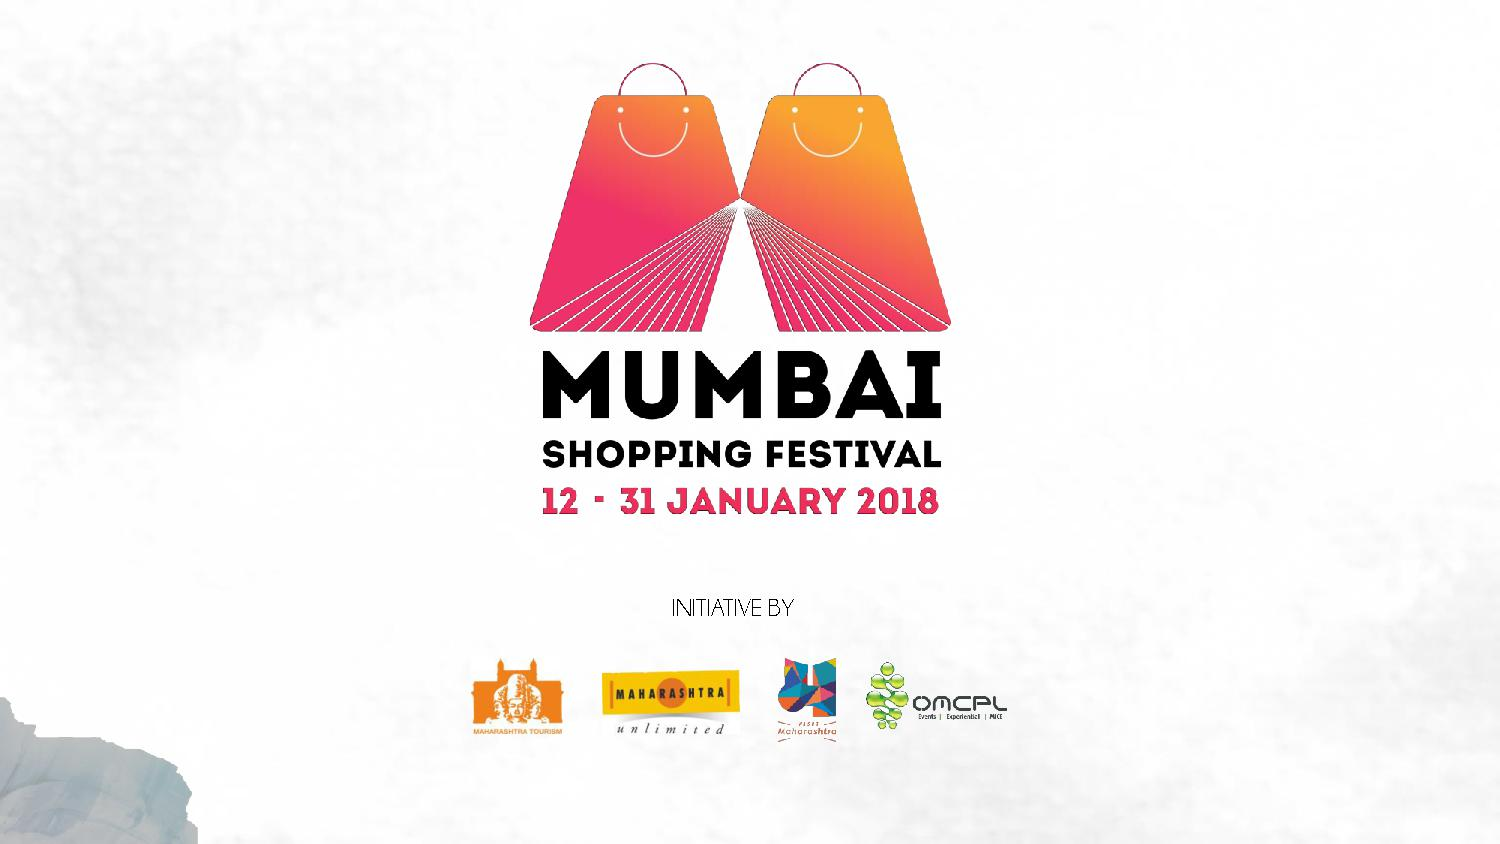 Mumbai Shopping Festival 12-31 January 2018 Initiative by Maharashtra Govt, MTDC